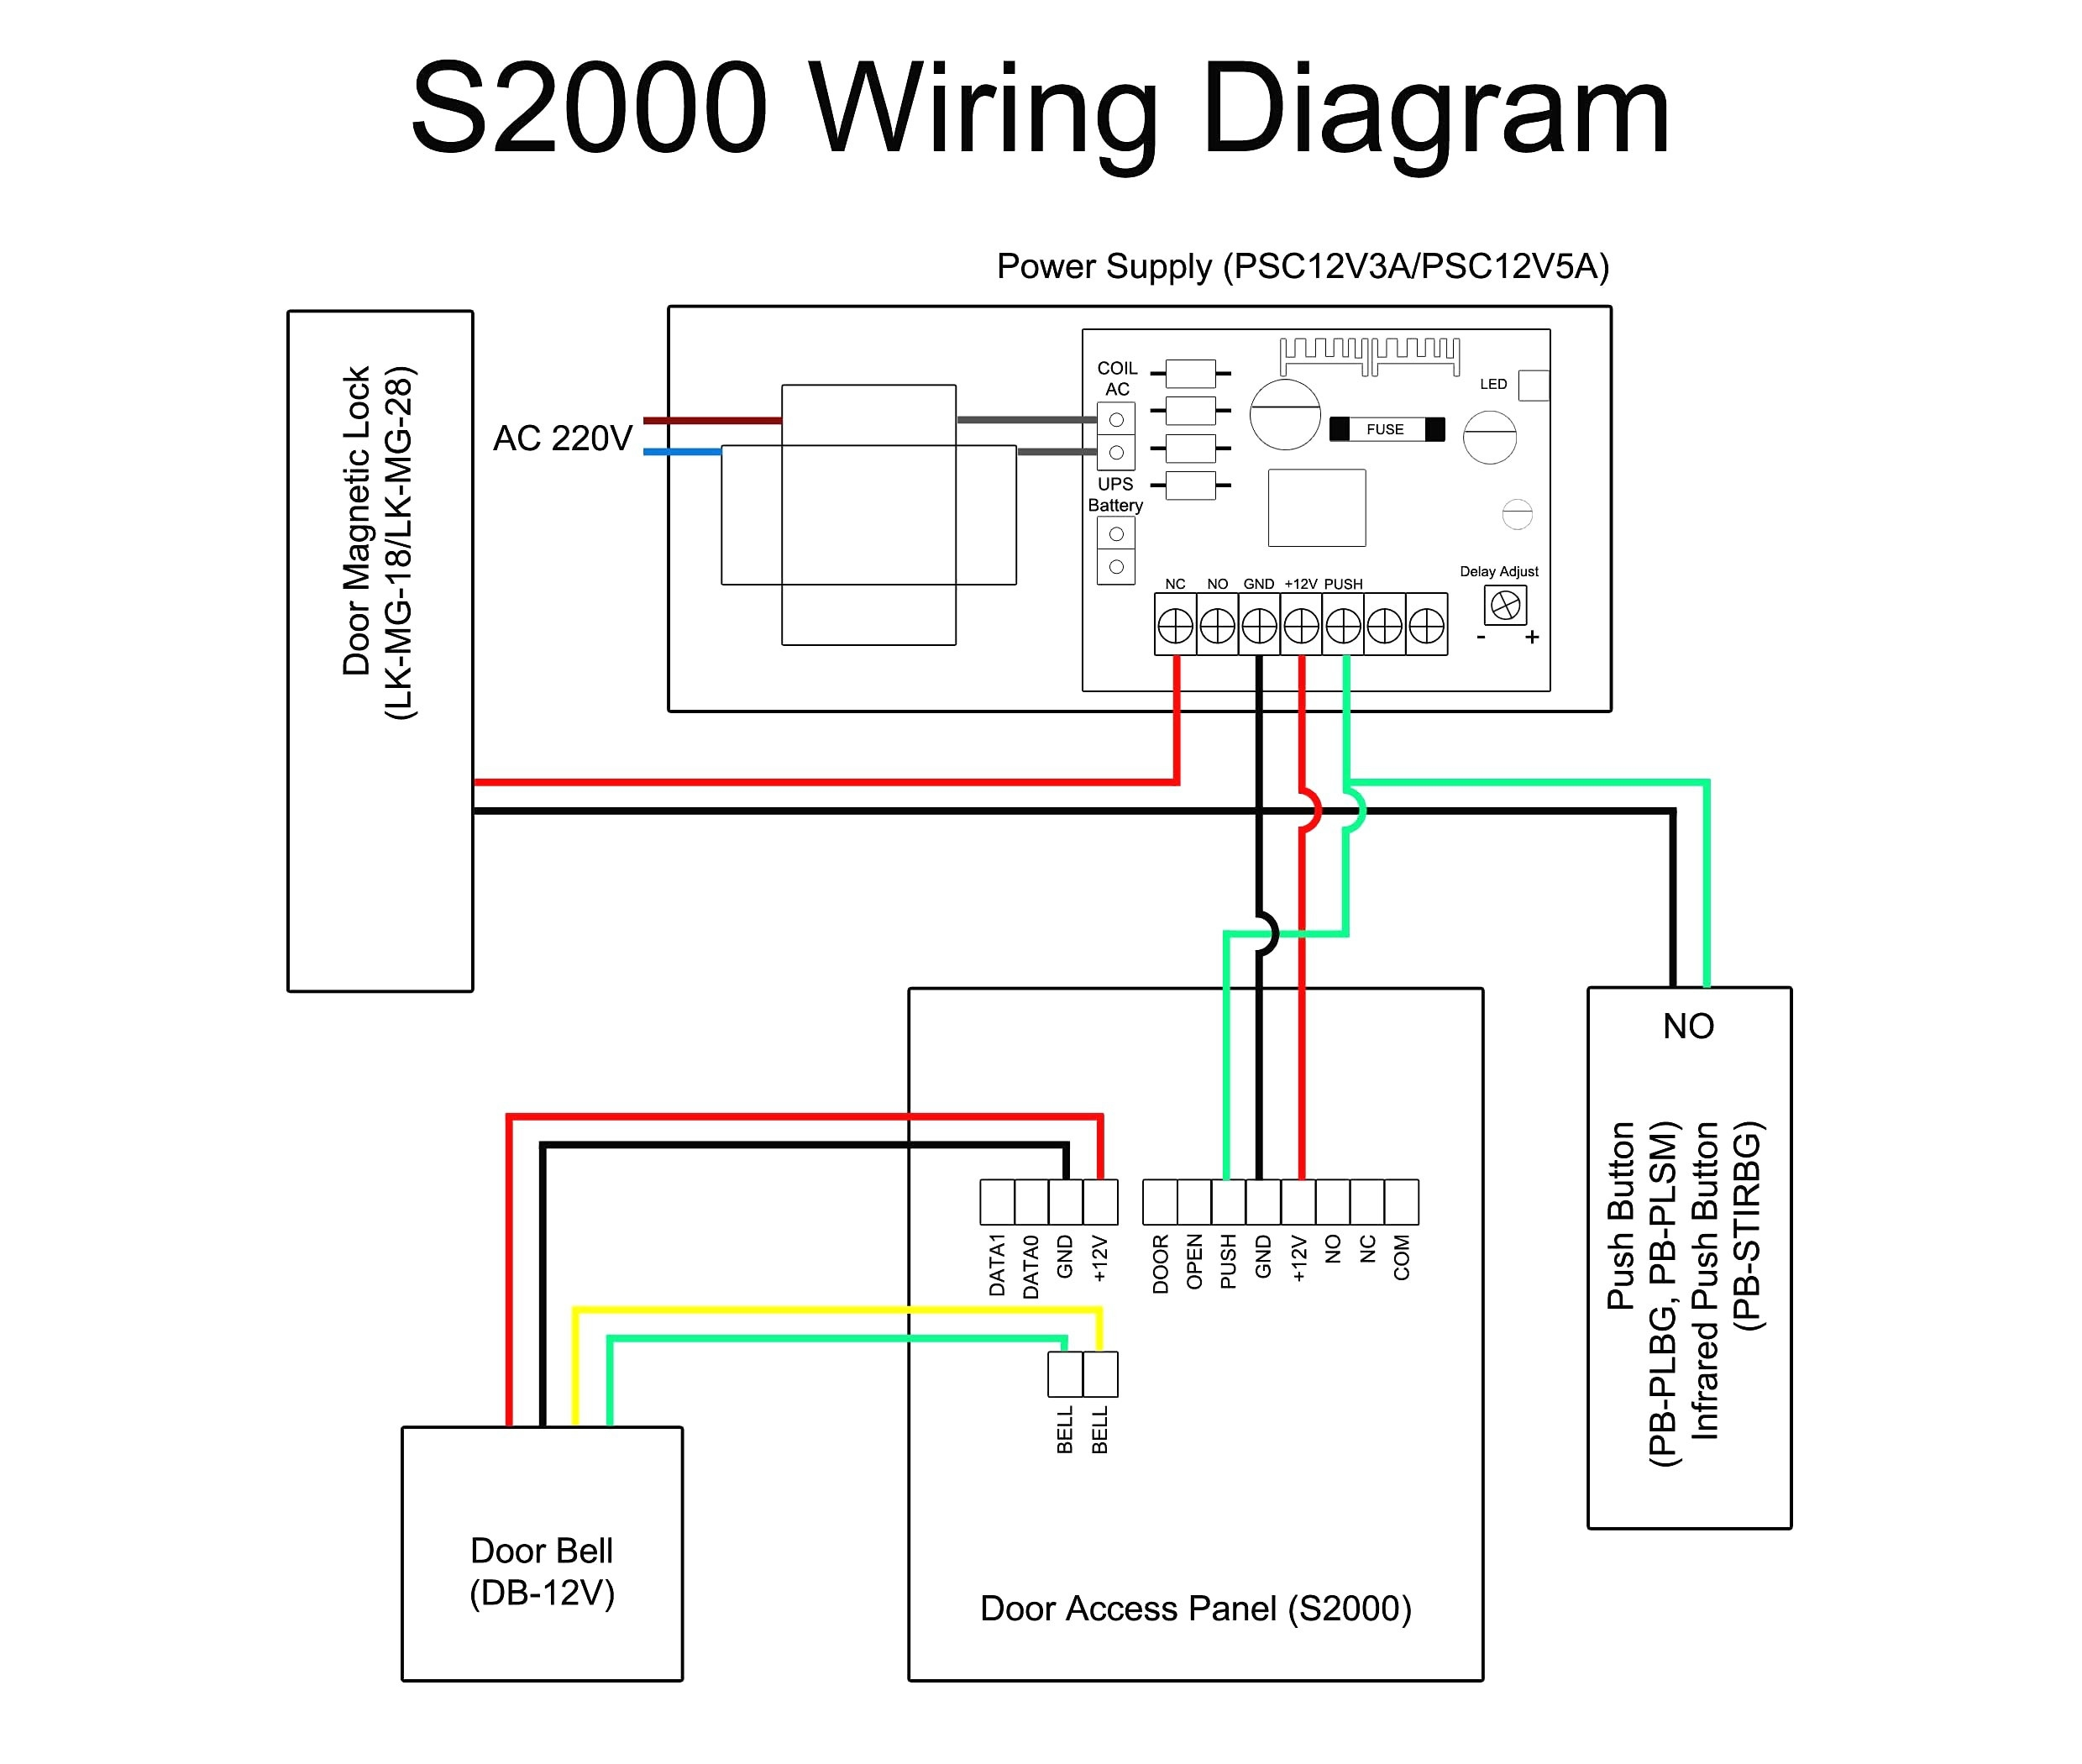 pre wiring diagram wiring diagram centre pre wired alarm system diagram in house wiring diagram toolboxpre wired alarm system diagram in house